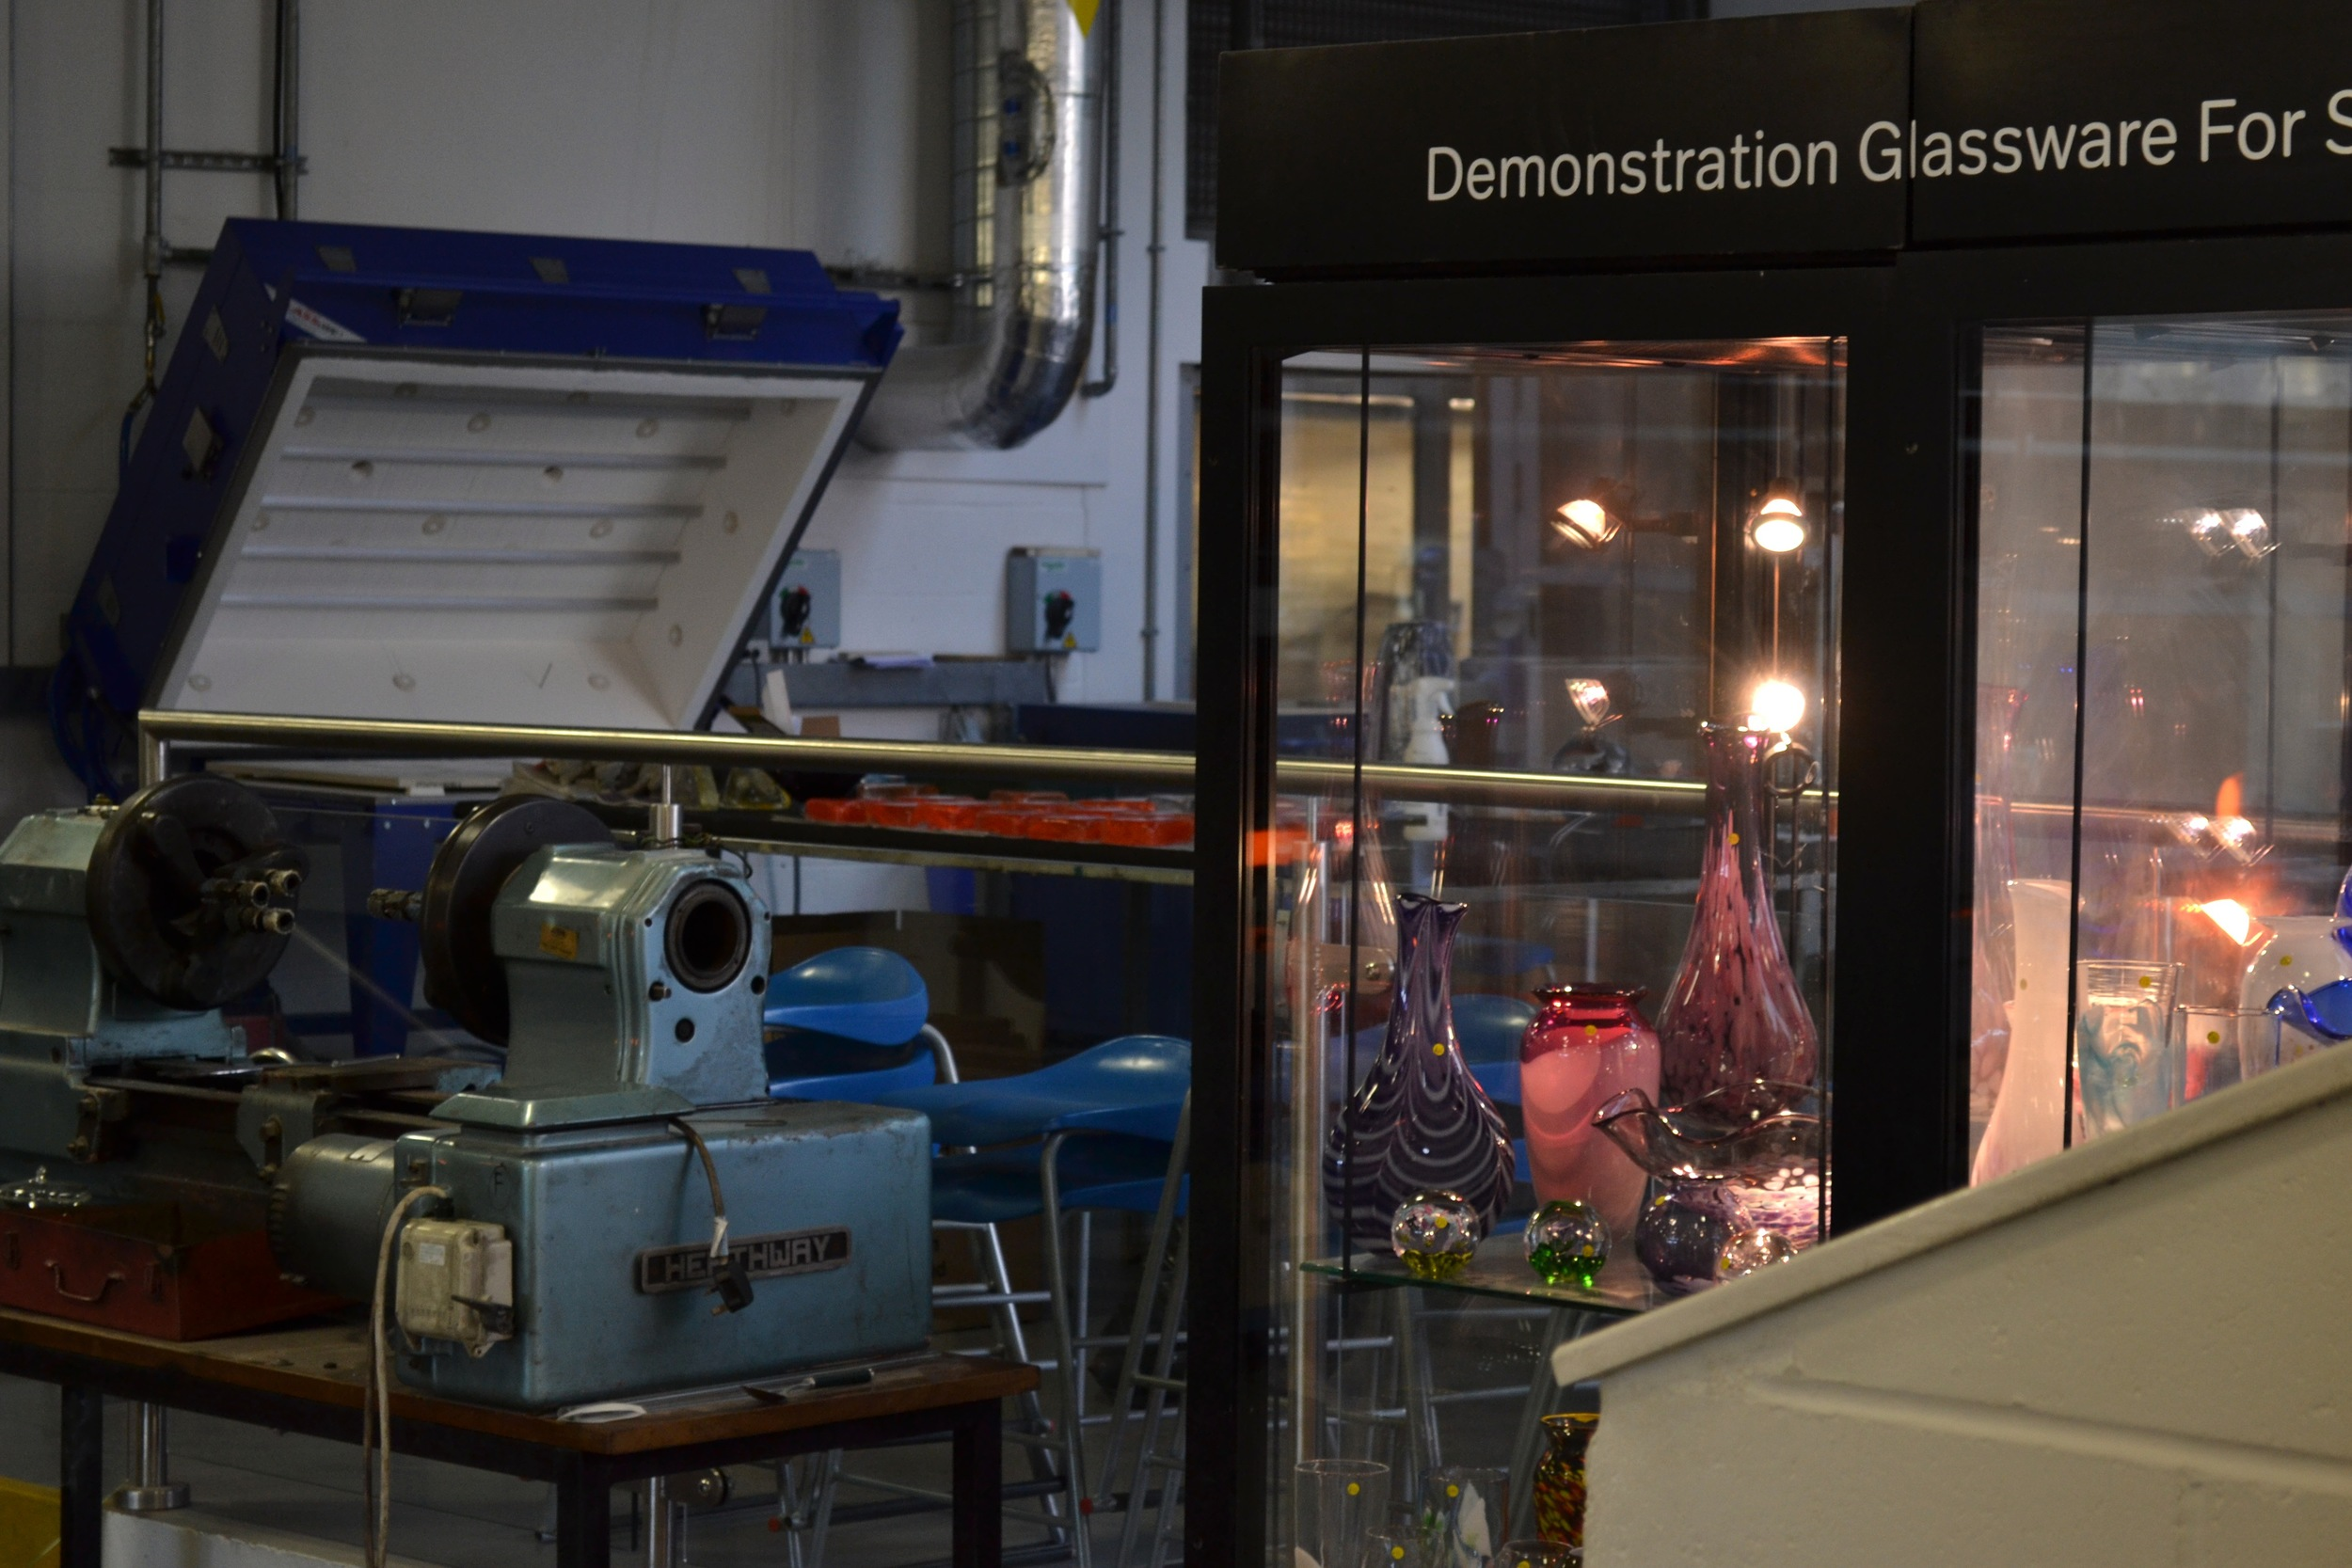 National Glass Centre Demonstration. 2015